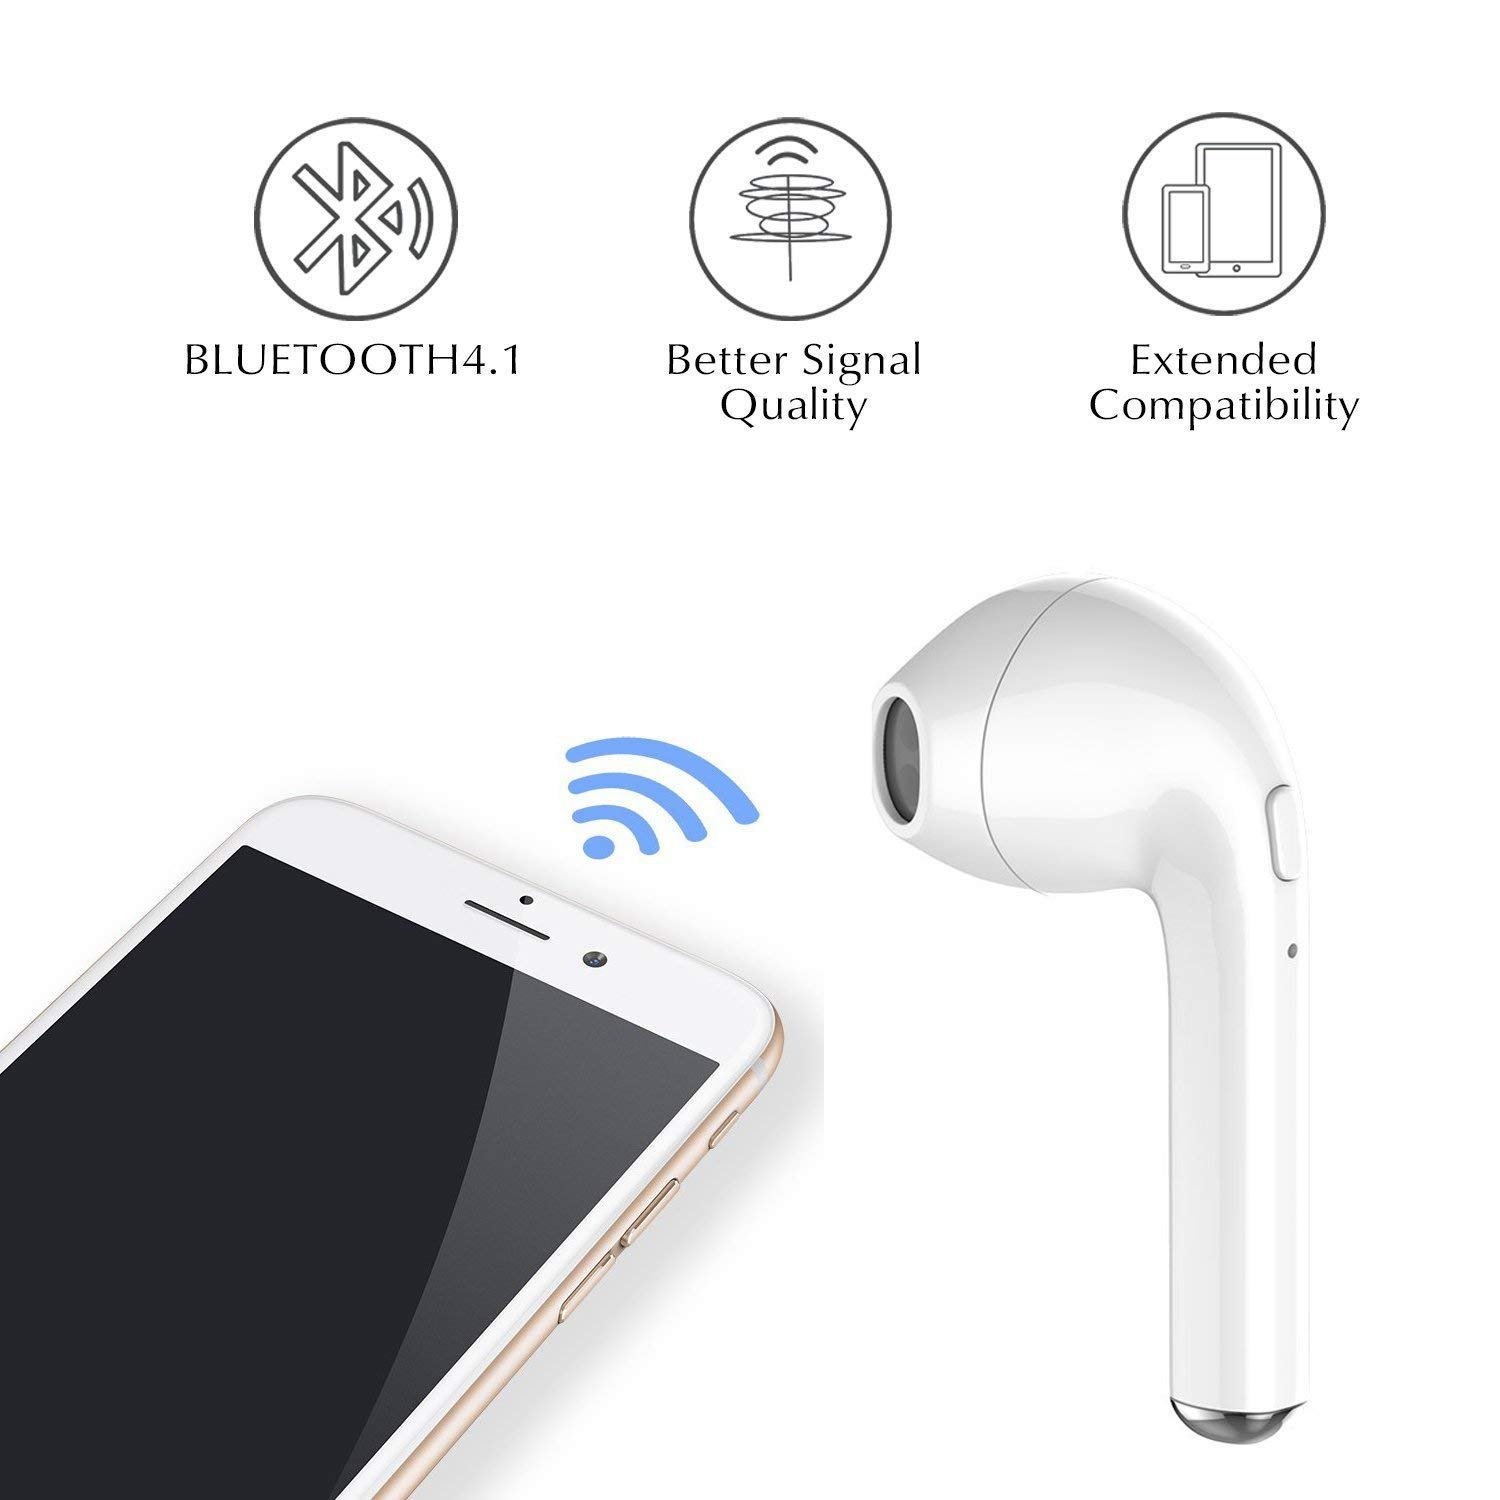 wireless Bluetooth headset, bass HiFi stereo in-ear headphones, with charging box and noise reduction, sweat-proof sports headphones built-in microphone, compatible with iphone, Android and other Blue